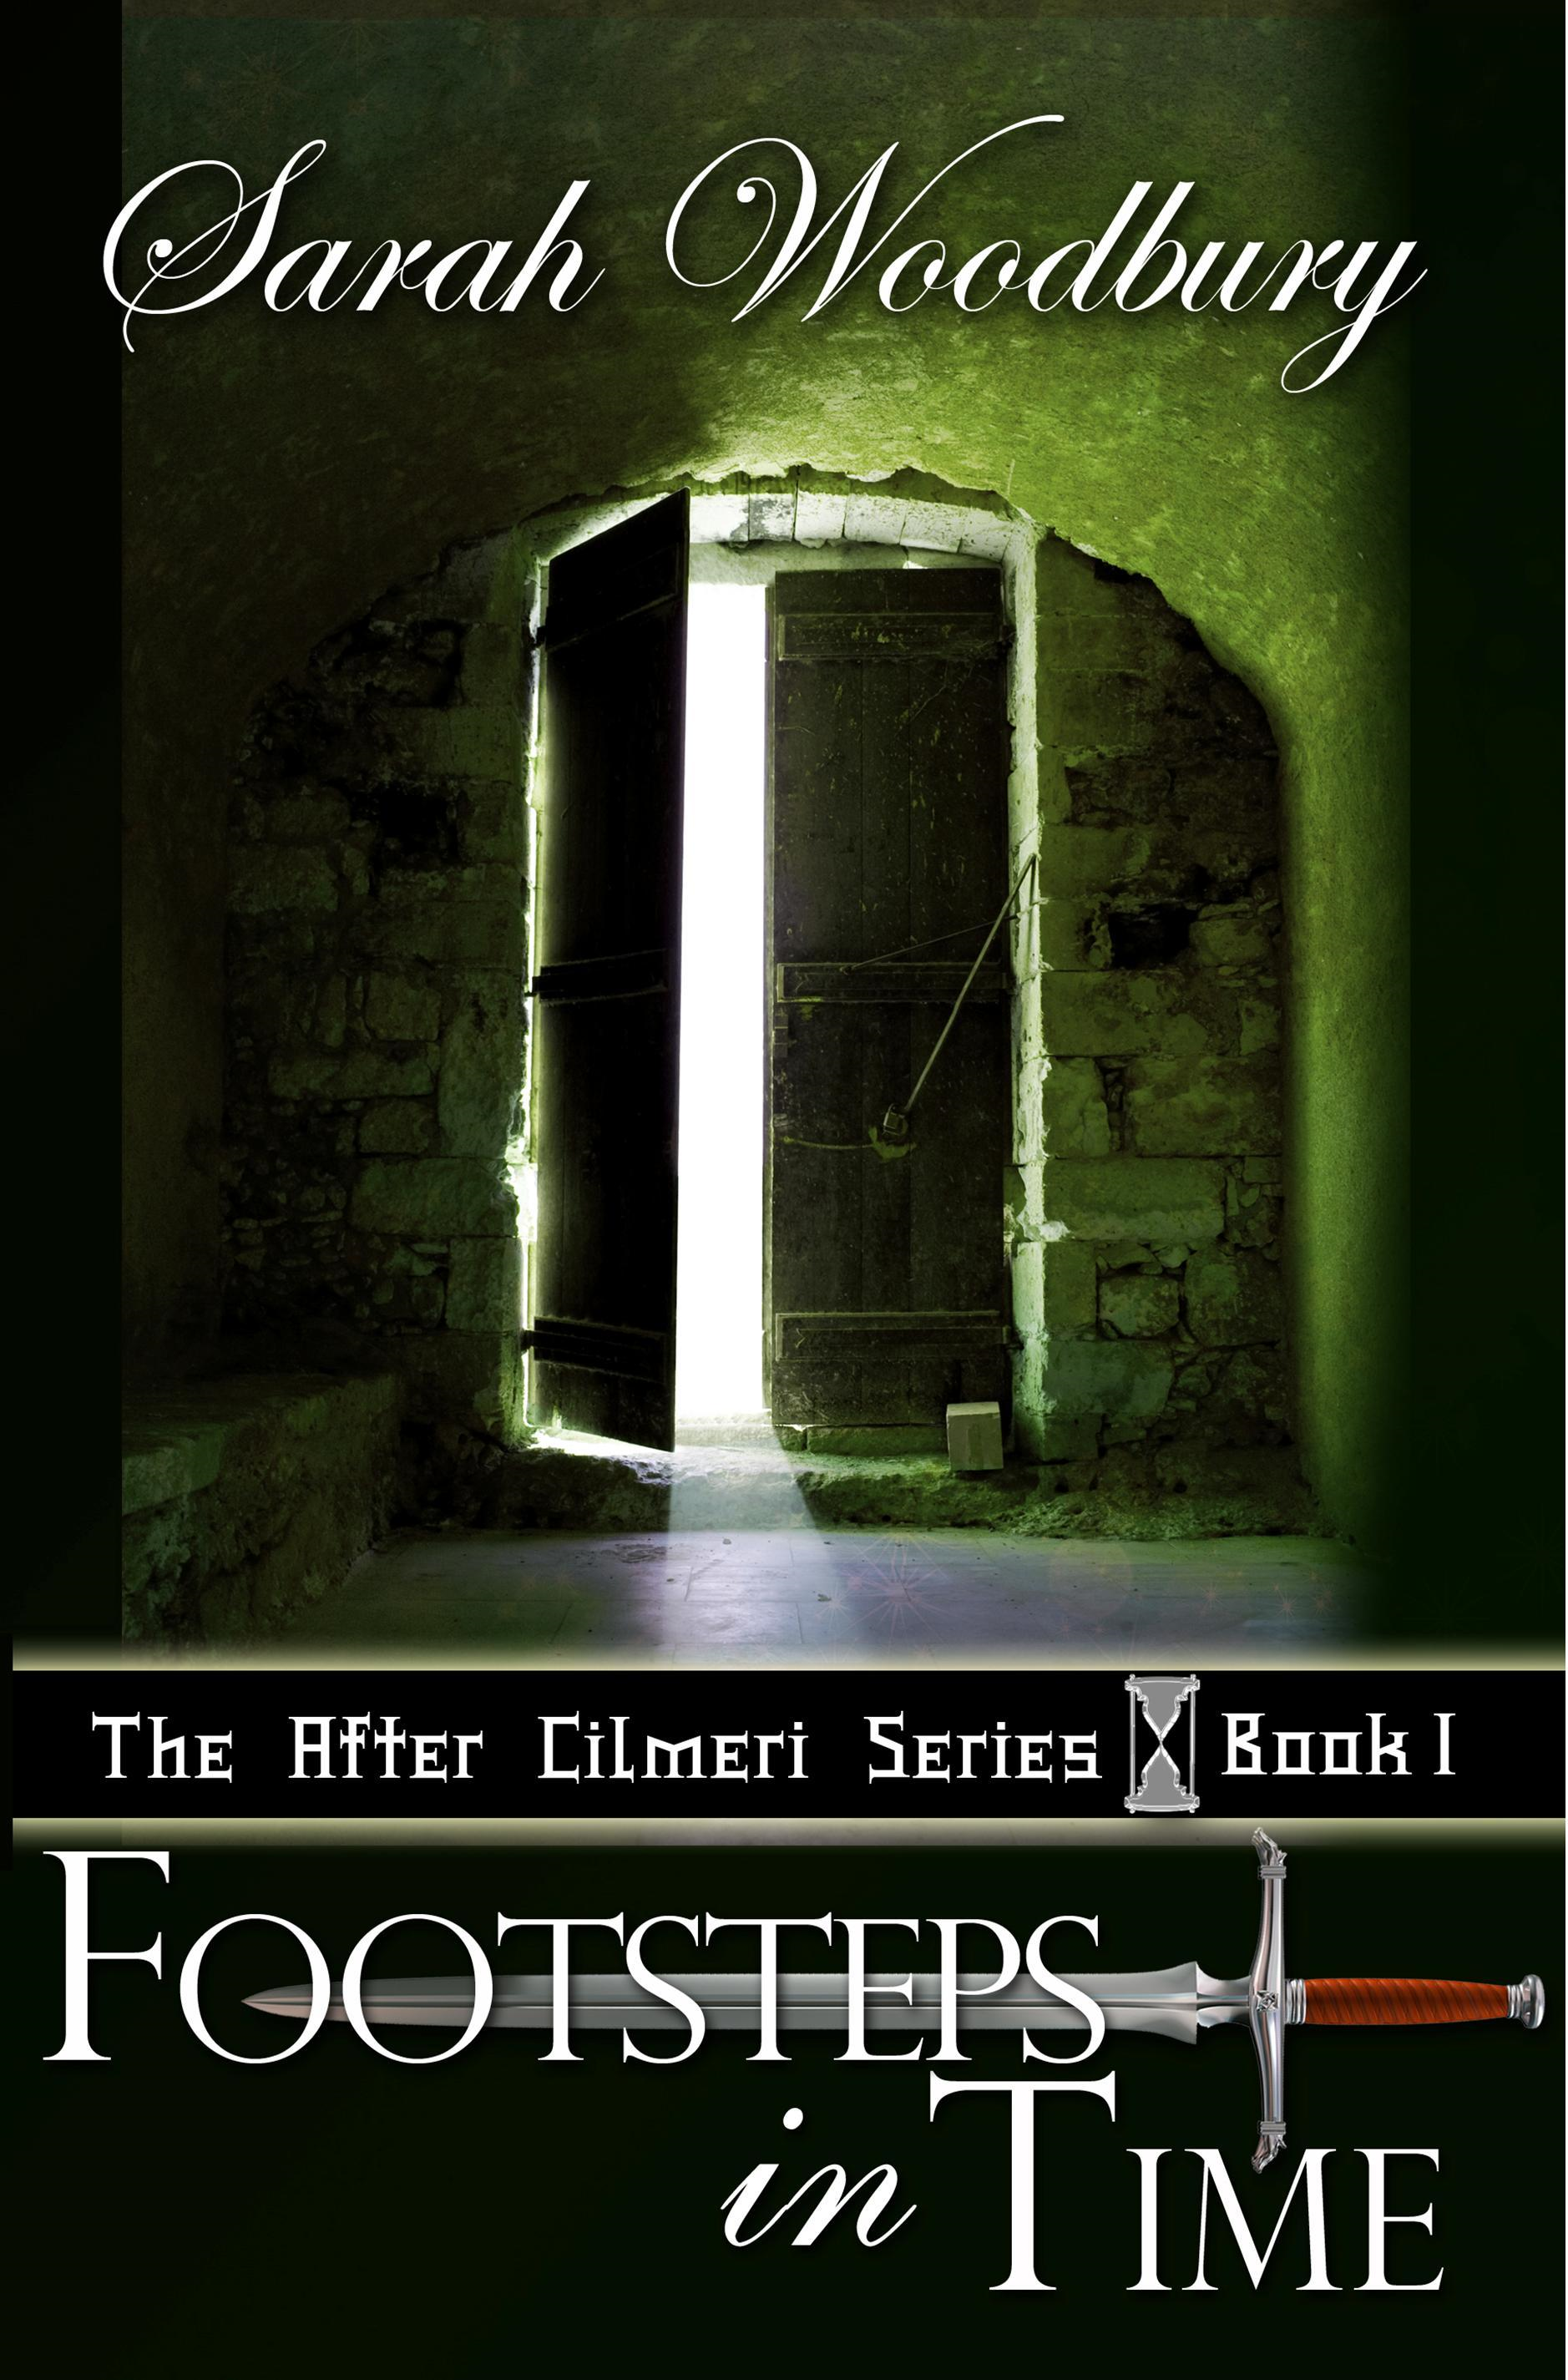 Footsteps in Time:  A Time Travel Fantasy (The After Cilmeri Series) By: Sarah Woodbury